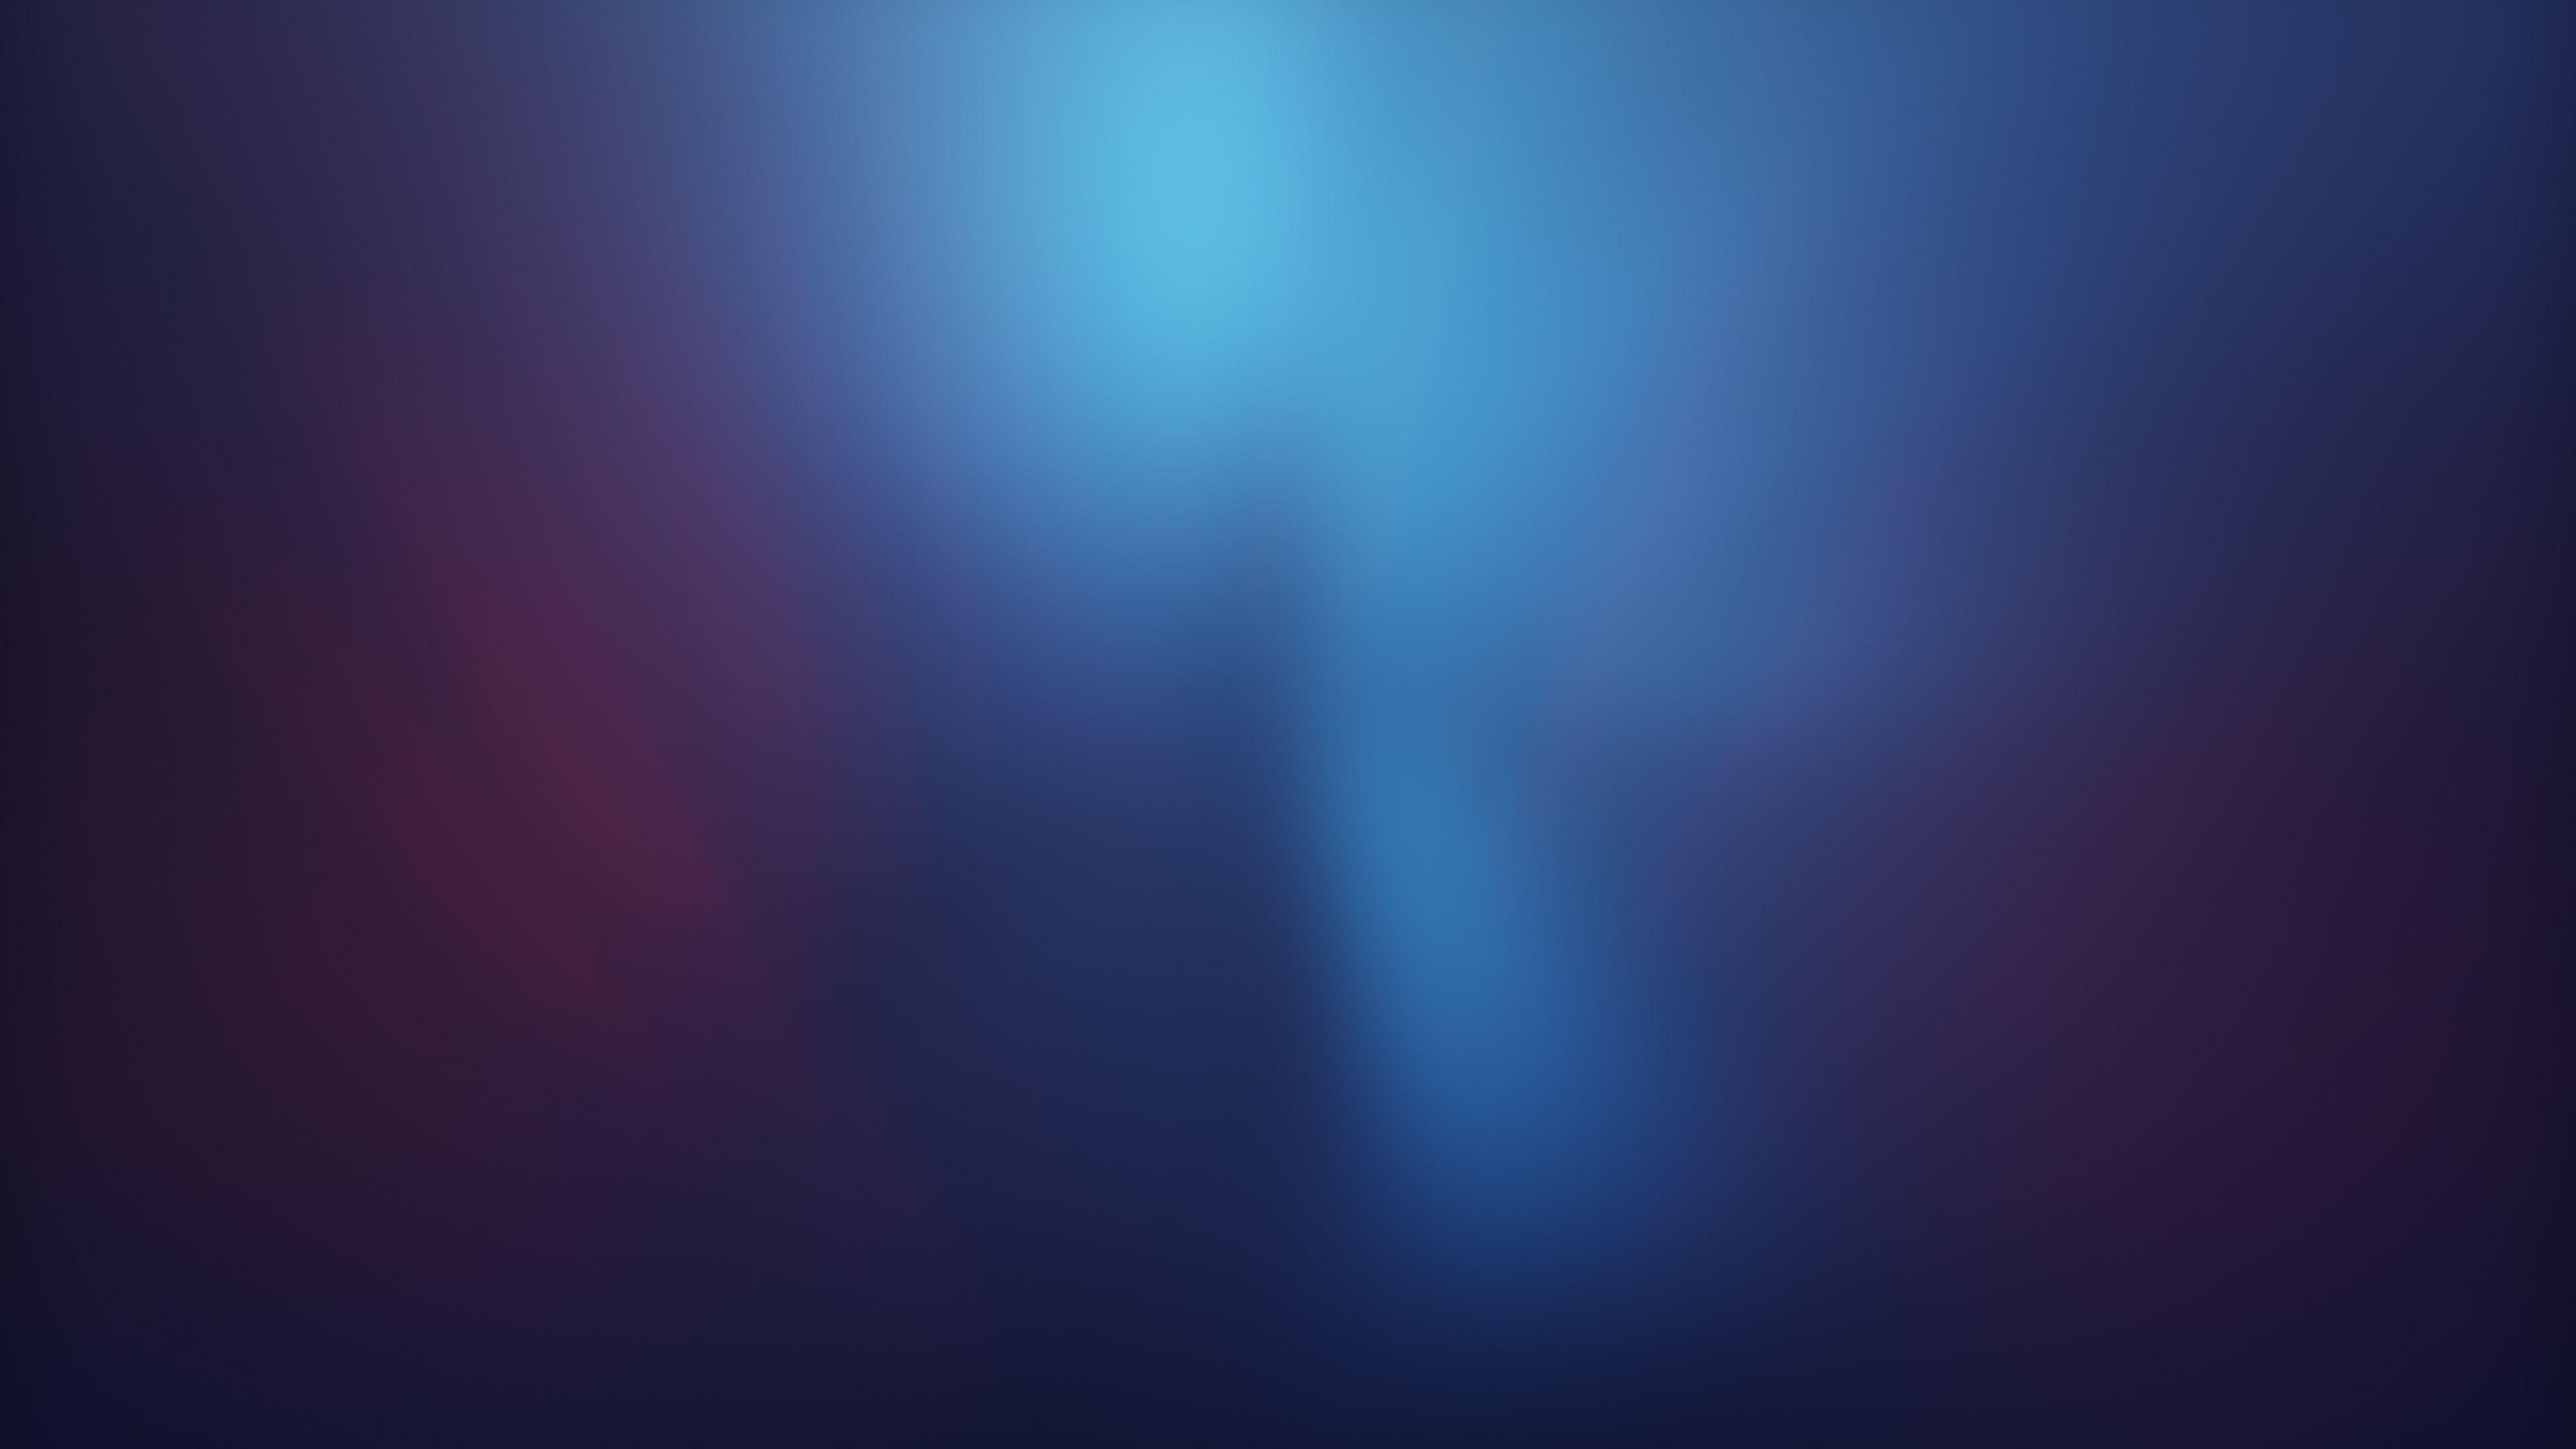 Minimalist Abstract Wallpapers Wallpaper Cave